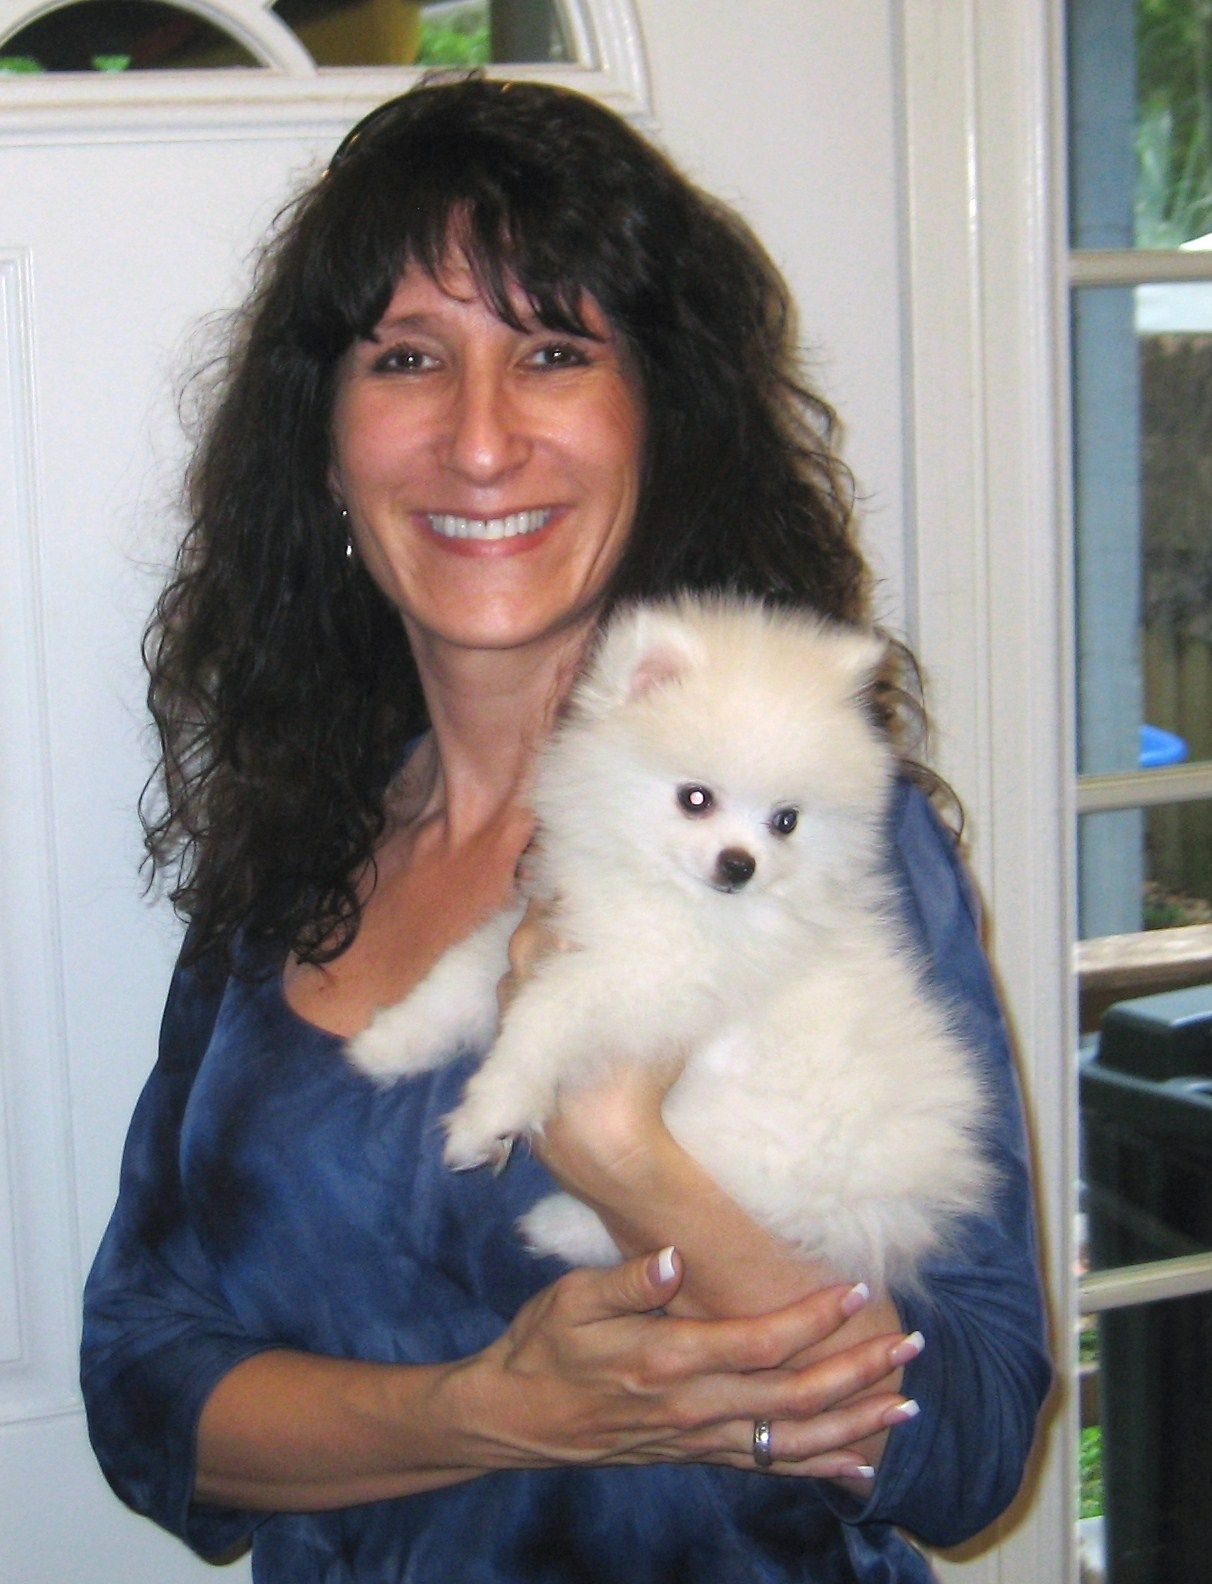 Teacup Pomeranian Puppies For Sale In Tampa Florida Poofy Poochies